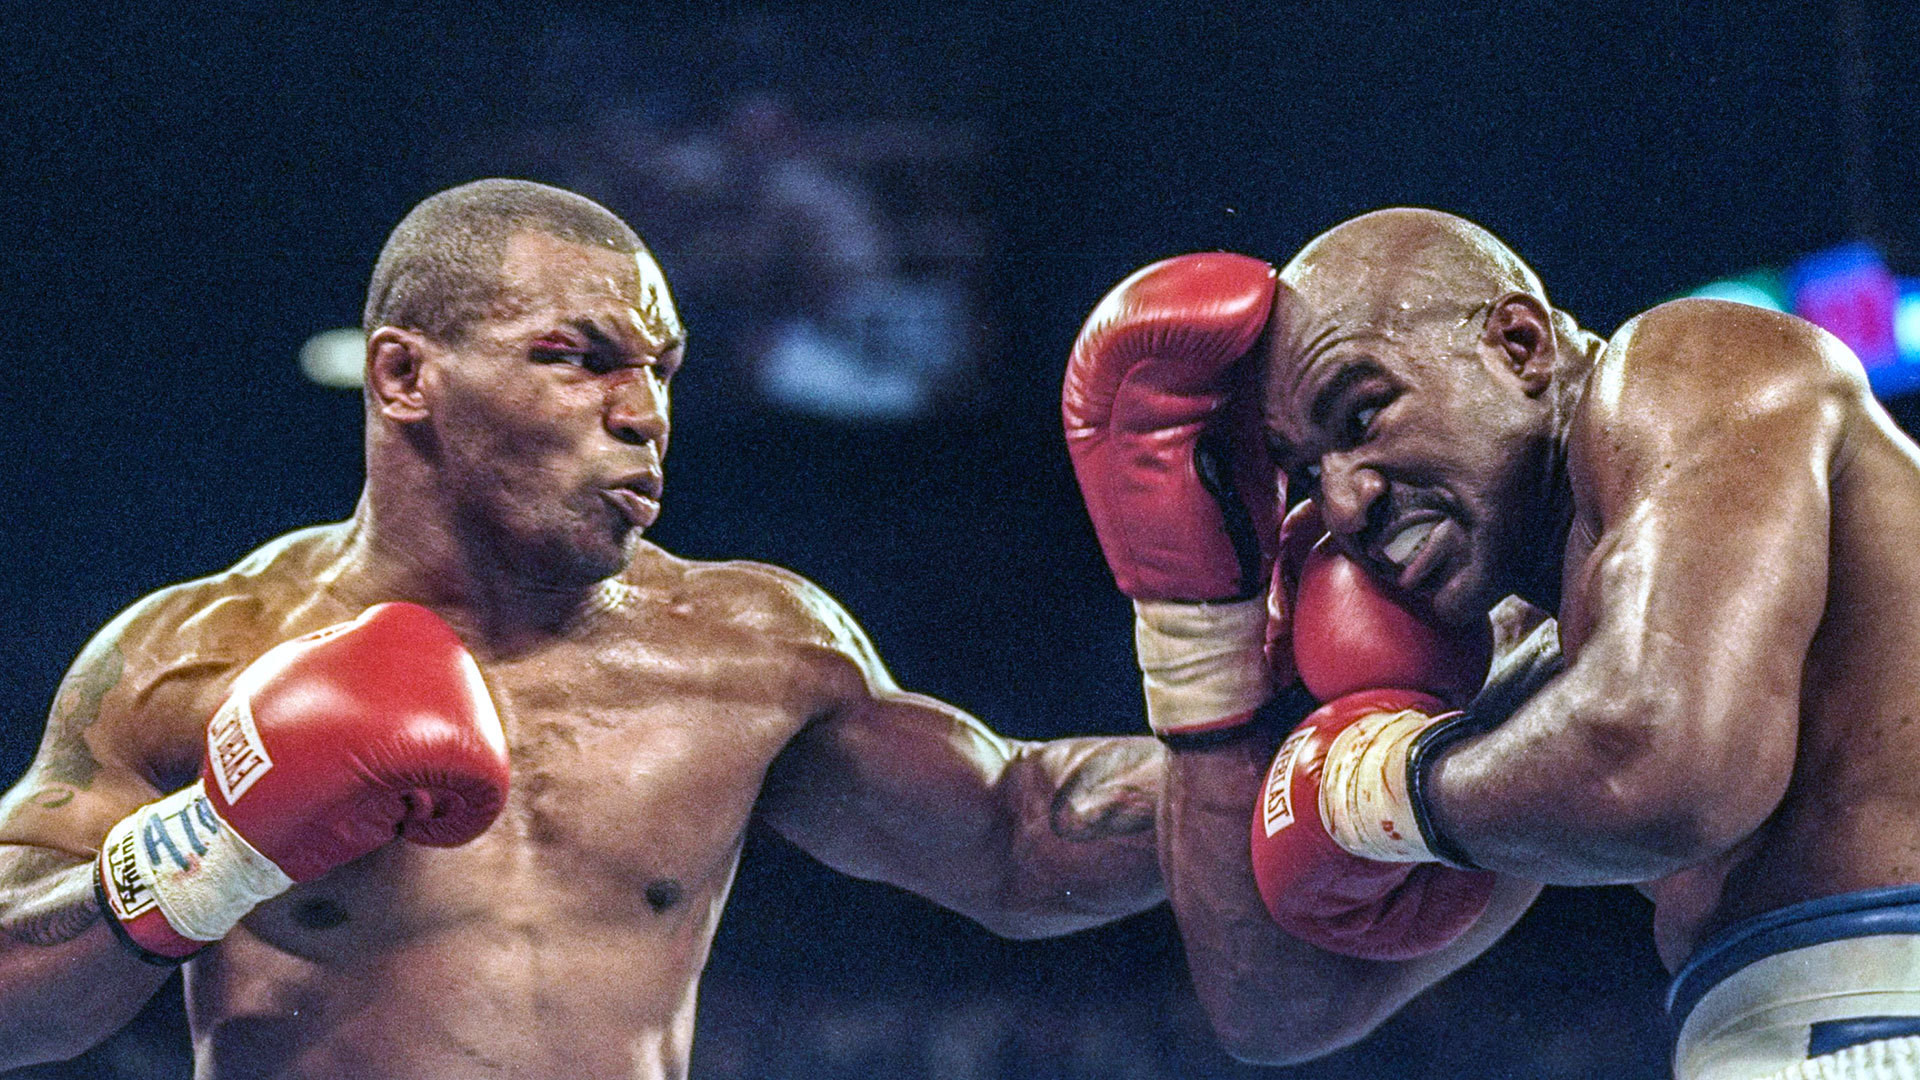 1920x1080 Mike Tyson Widescreen